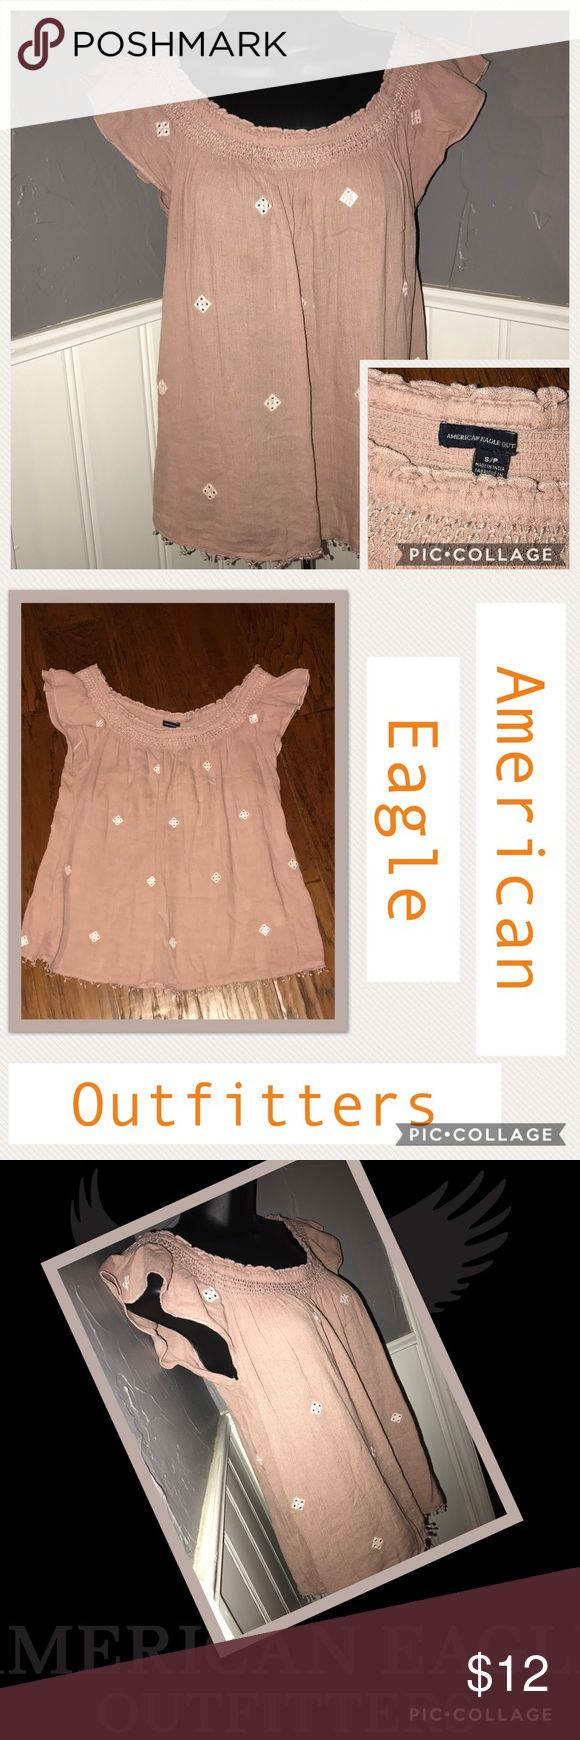 American Eagle 🦅 Outfitters Cute New Top Scoop neck in front and back. Gorgeous American 🦅 Eagle Top New WOT Size S/P. Fits Small and S/P perfect. Gorgeous Rose Gold Color. Don't forget to bundle so I can give you a private price. American Eagle Outfitters Tops Tunics